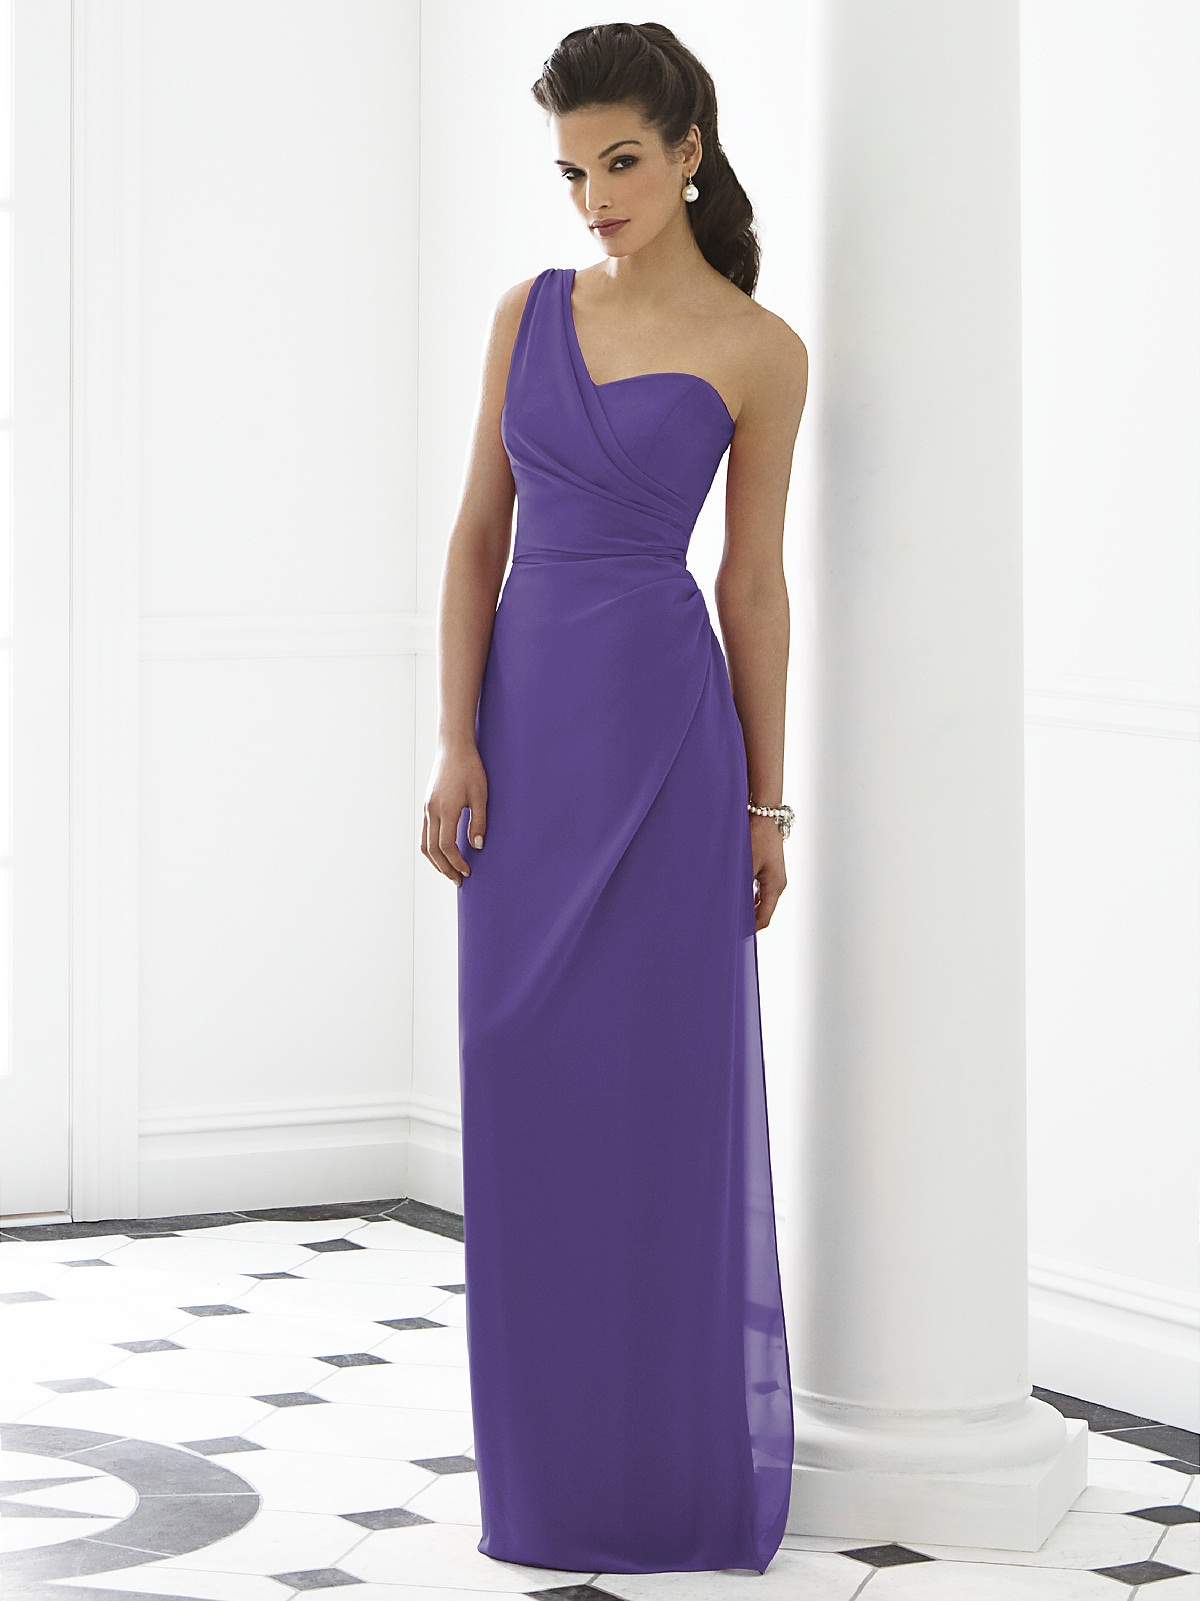 Gorgeous one shoulder purple bridesmaid dresses cherry marry purple one shoulder chiffon bridesmaid dress ombrellifo Images